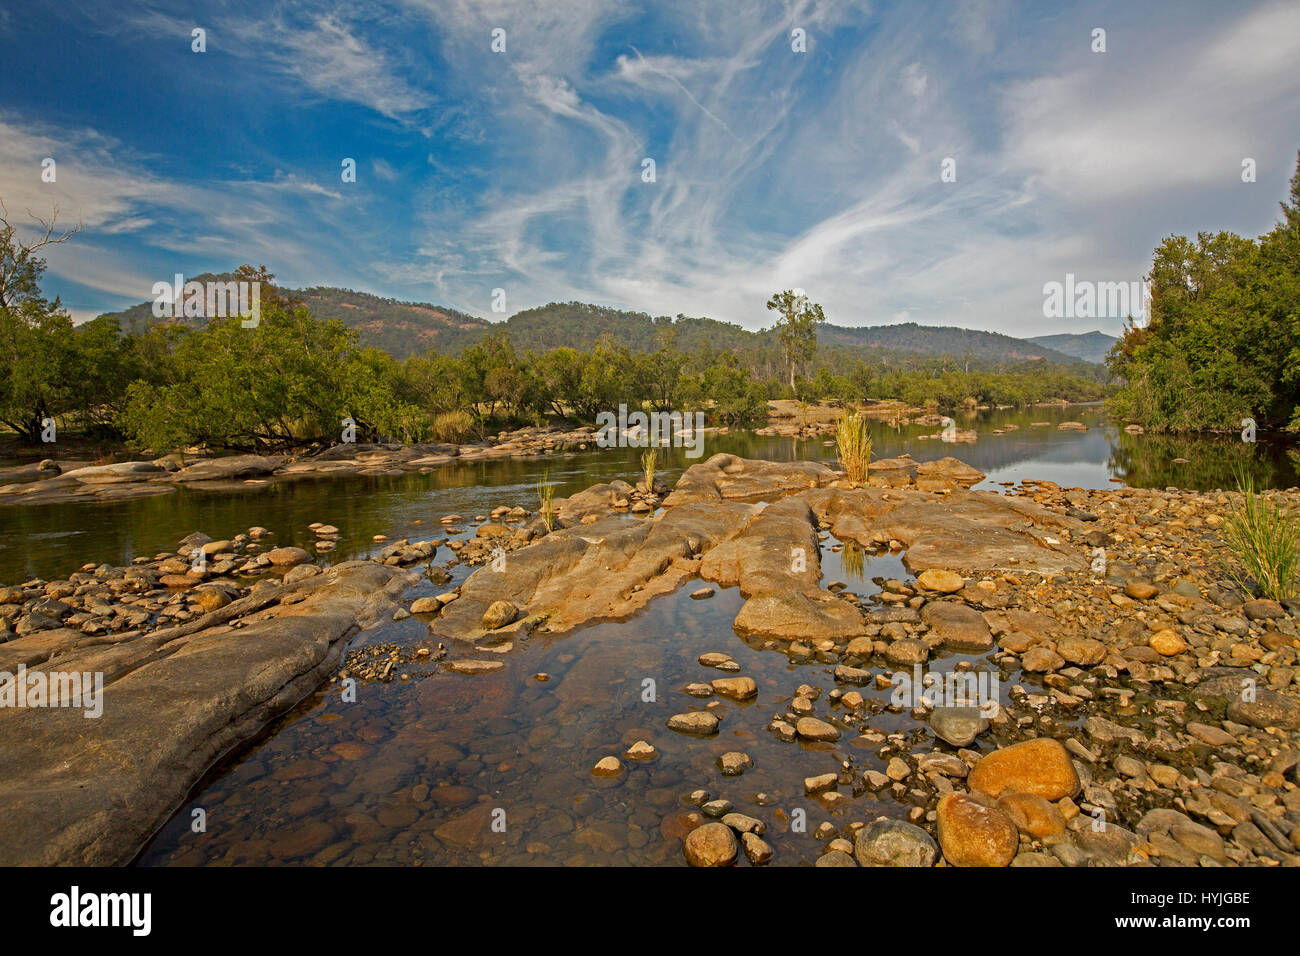 Panoramic view of rocky course of Mann River hemmed with forests & with ranges on horizon under blue sky near - Stock Image